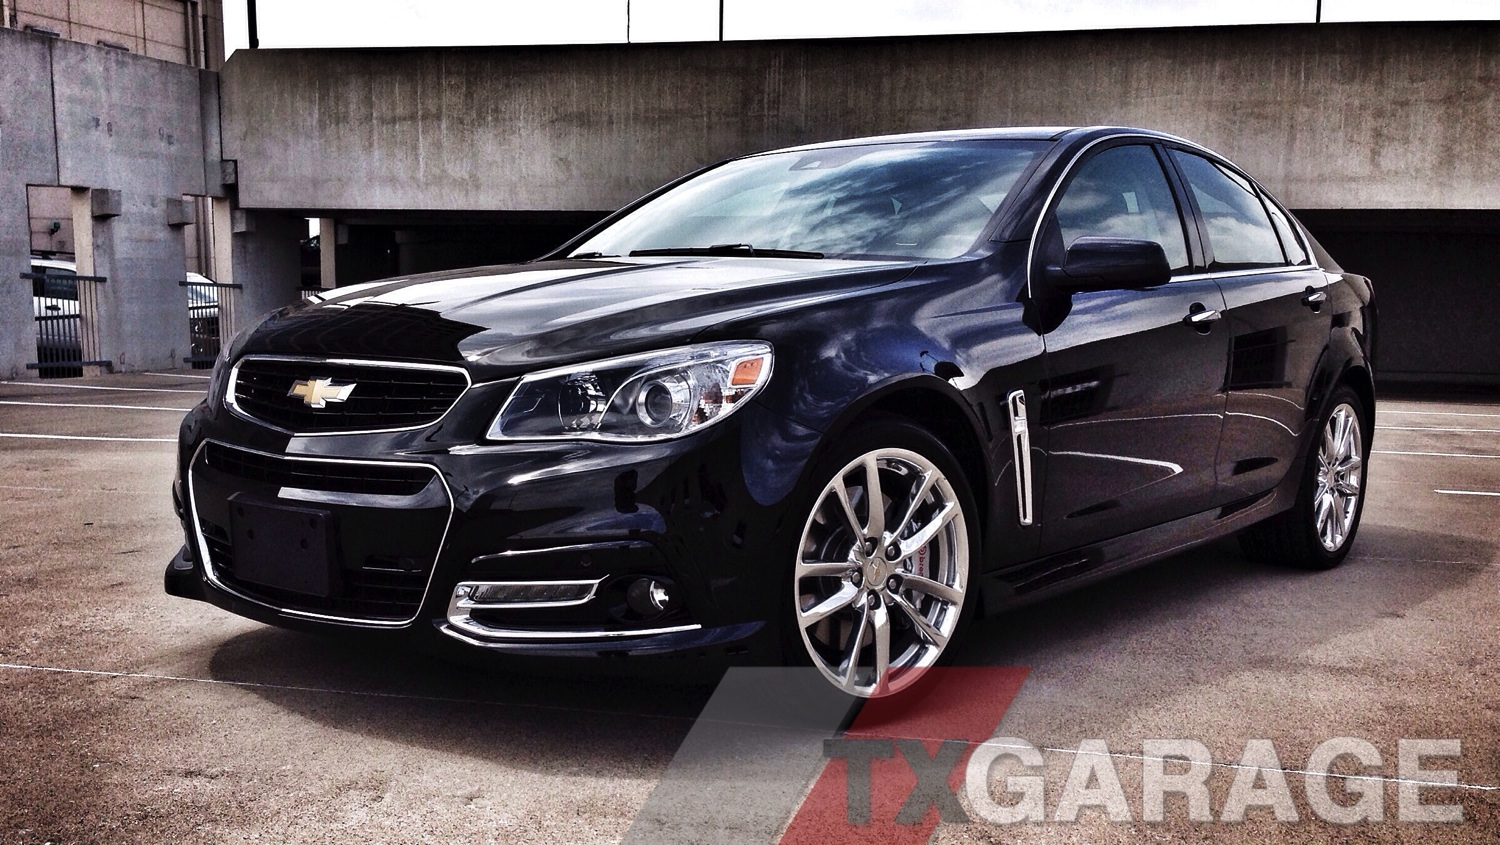 2014-Chevrolet-SS-Sedan-0013 | txGarage